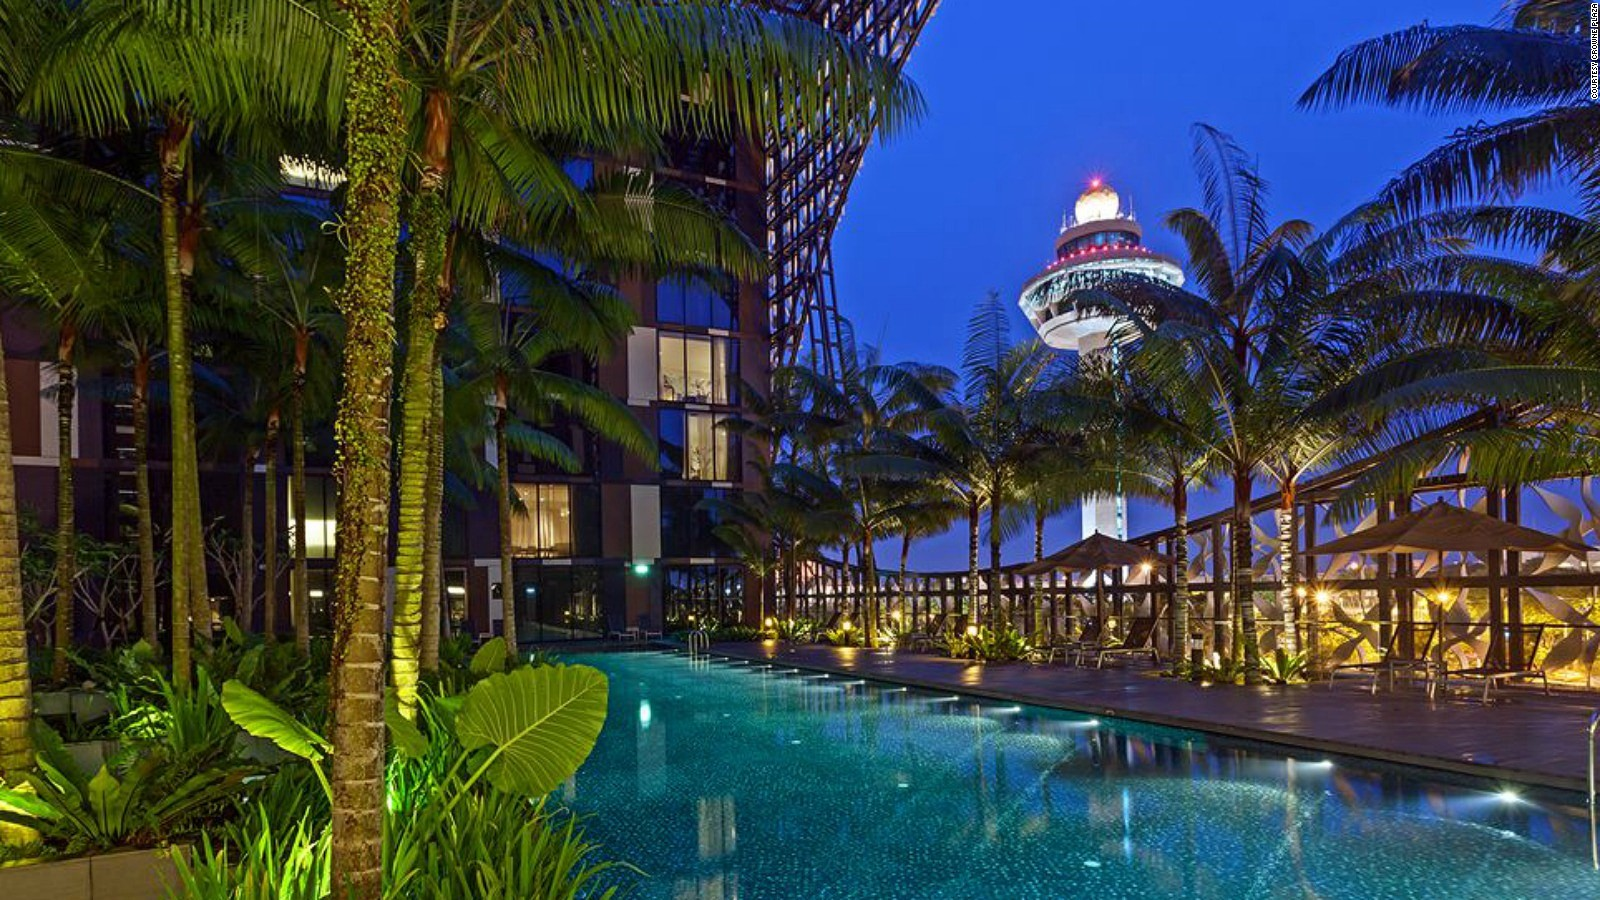 The Crowne Plaza Changi Airport hotel creates the kind of layover you'll never want to leave. There's a gym, spa, several restaurants and an enormous courtyard with a swimming pool flanked by rainforest-style gardens.